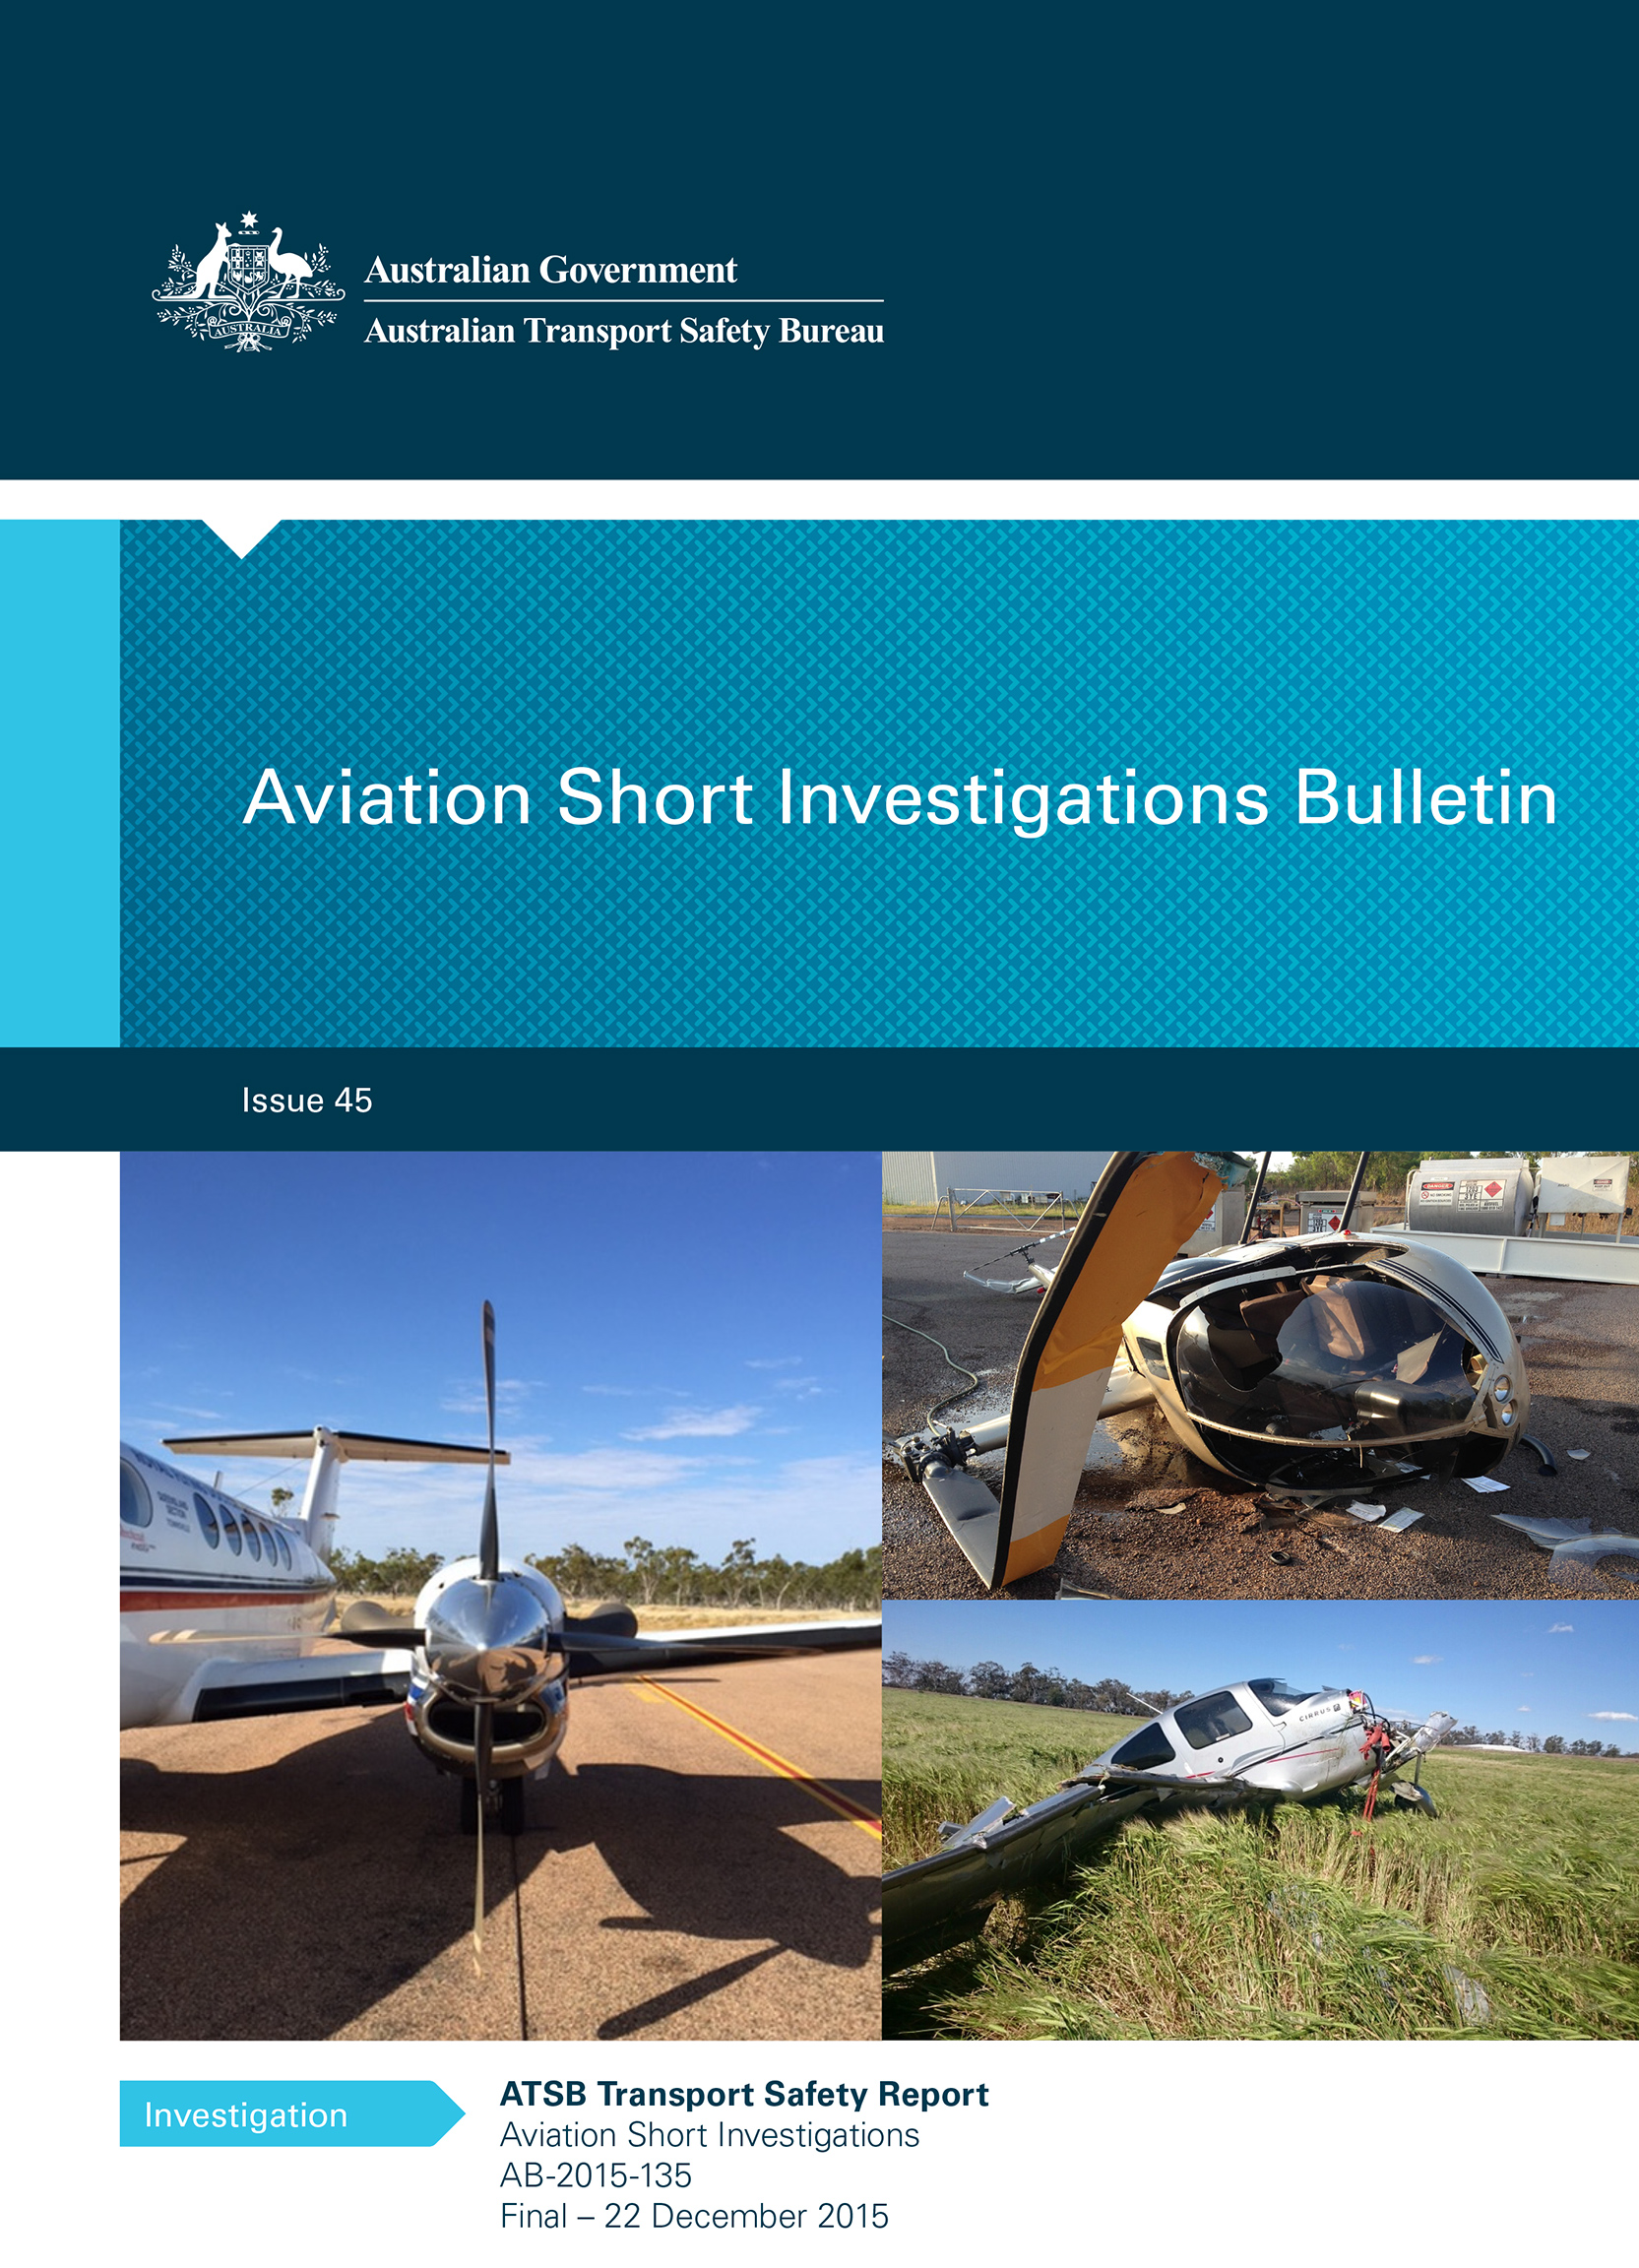 Download complete document - Aviation Short Investigations Bulletin - Issue 45